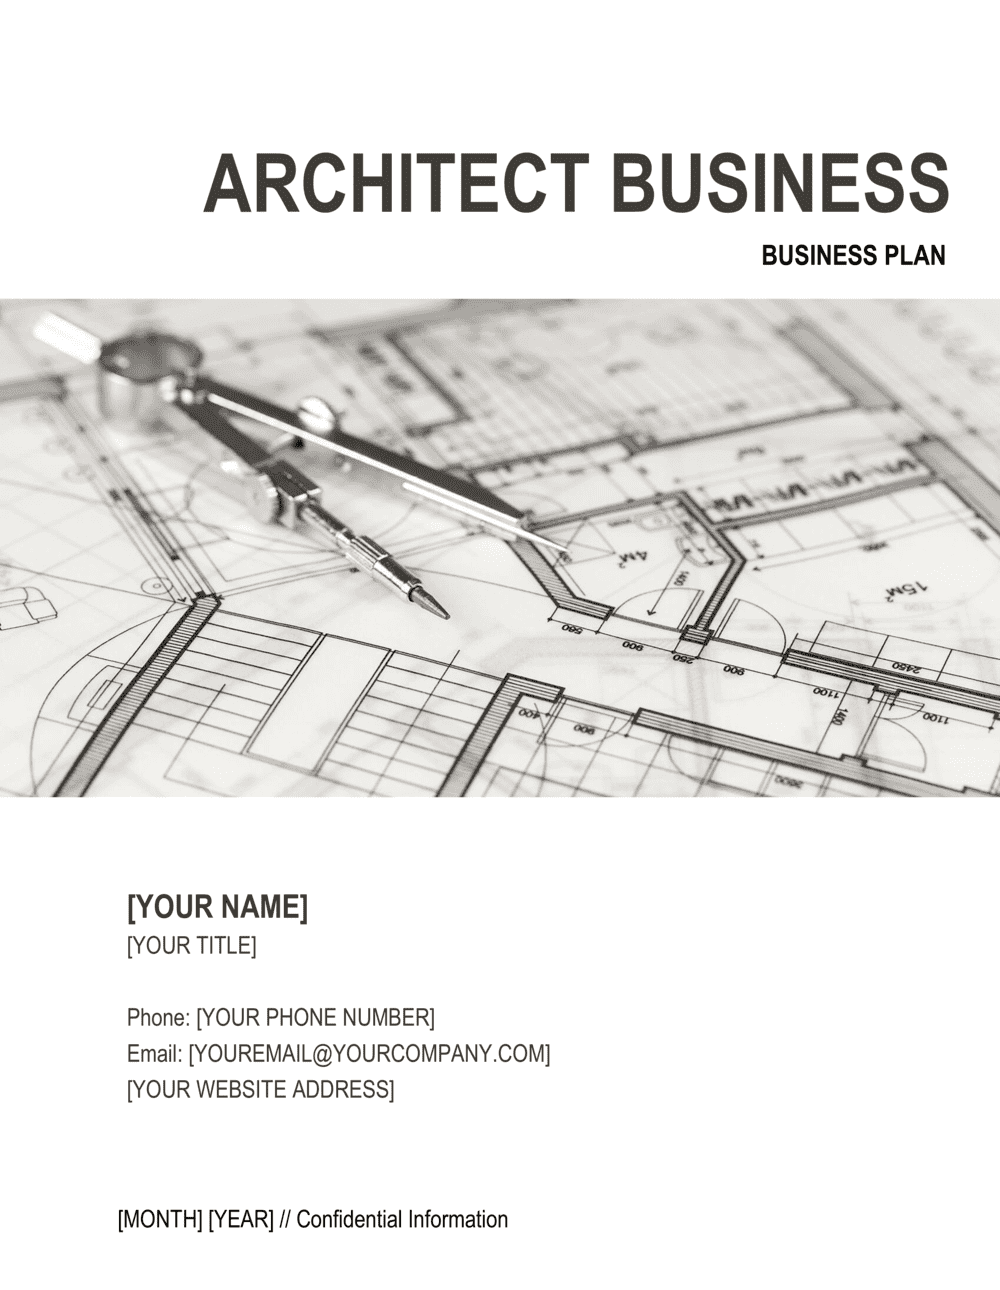 Business-in-a-Box's Architect Business Plan Template